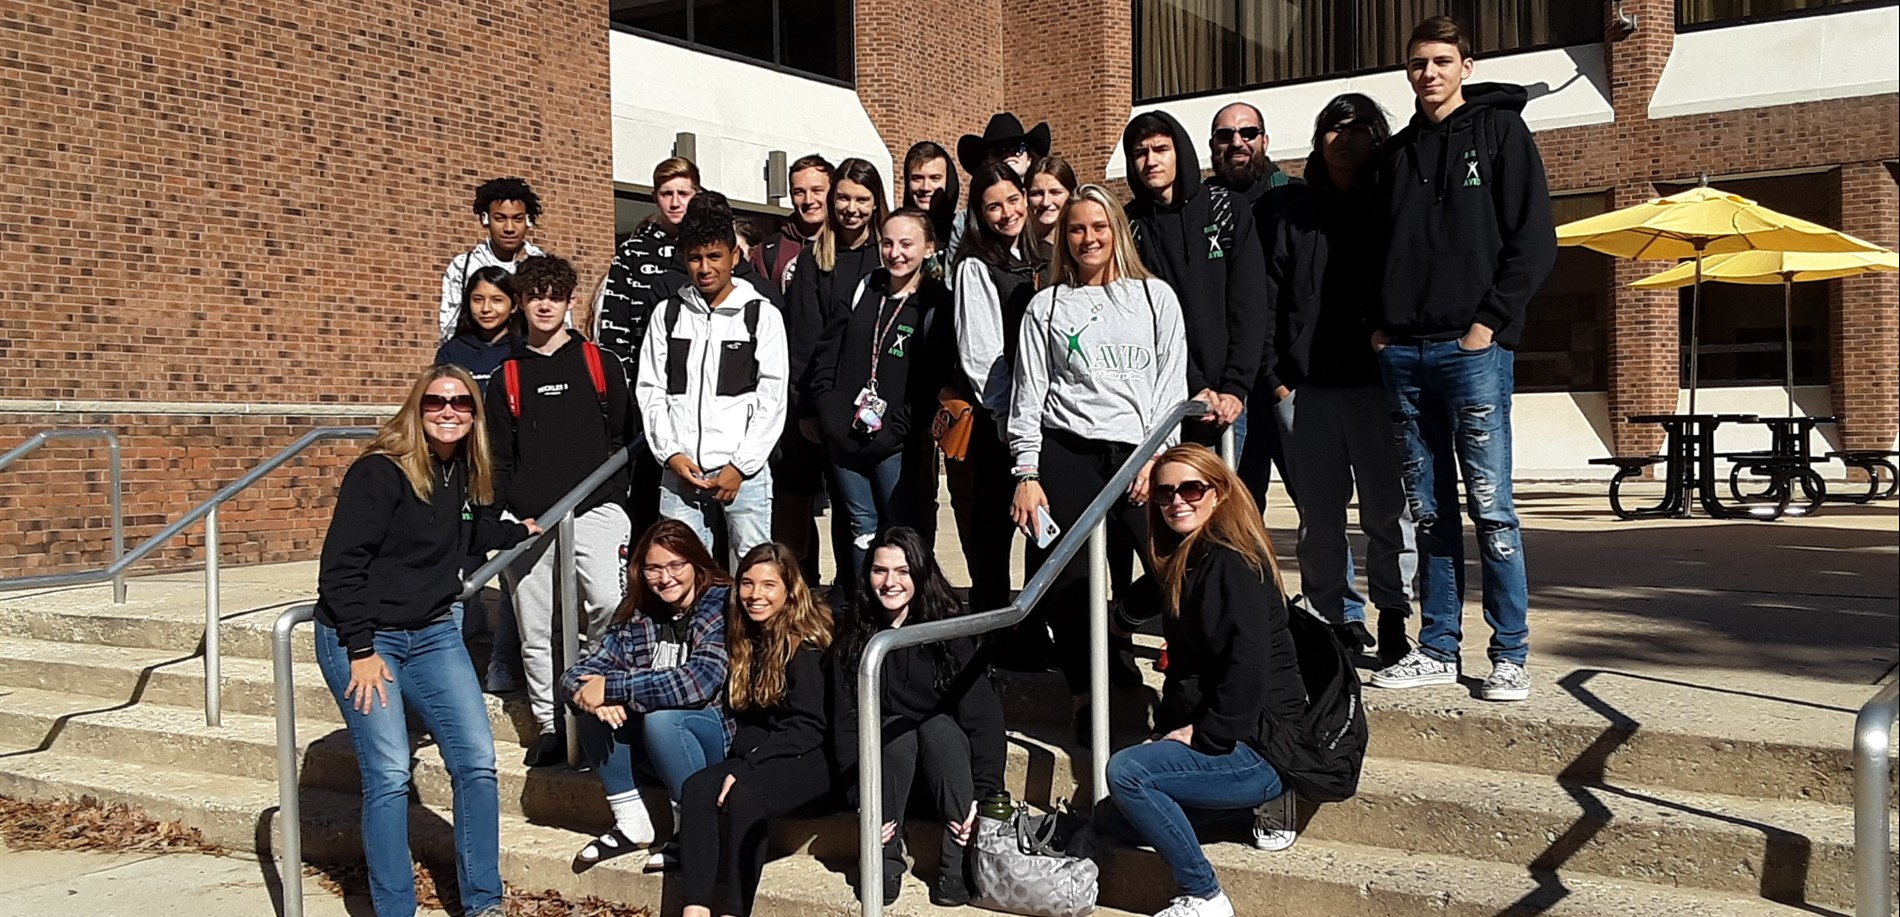 AVID 11 and AVID 12 trip to Rowan University!